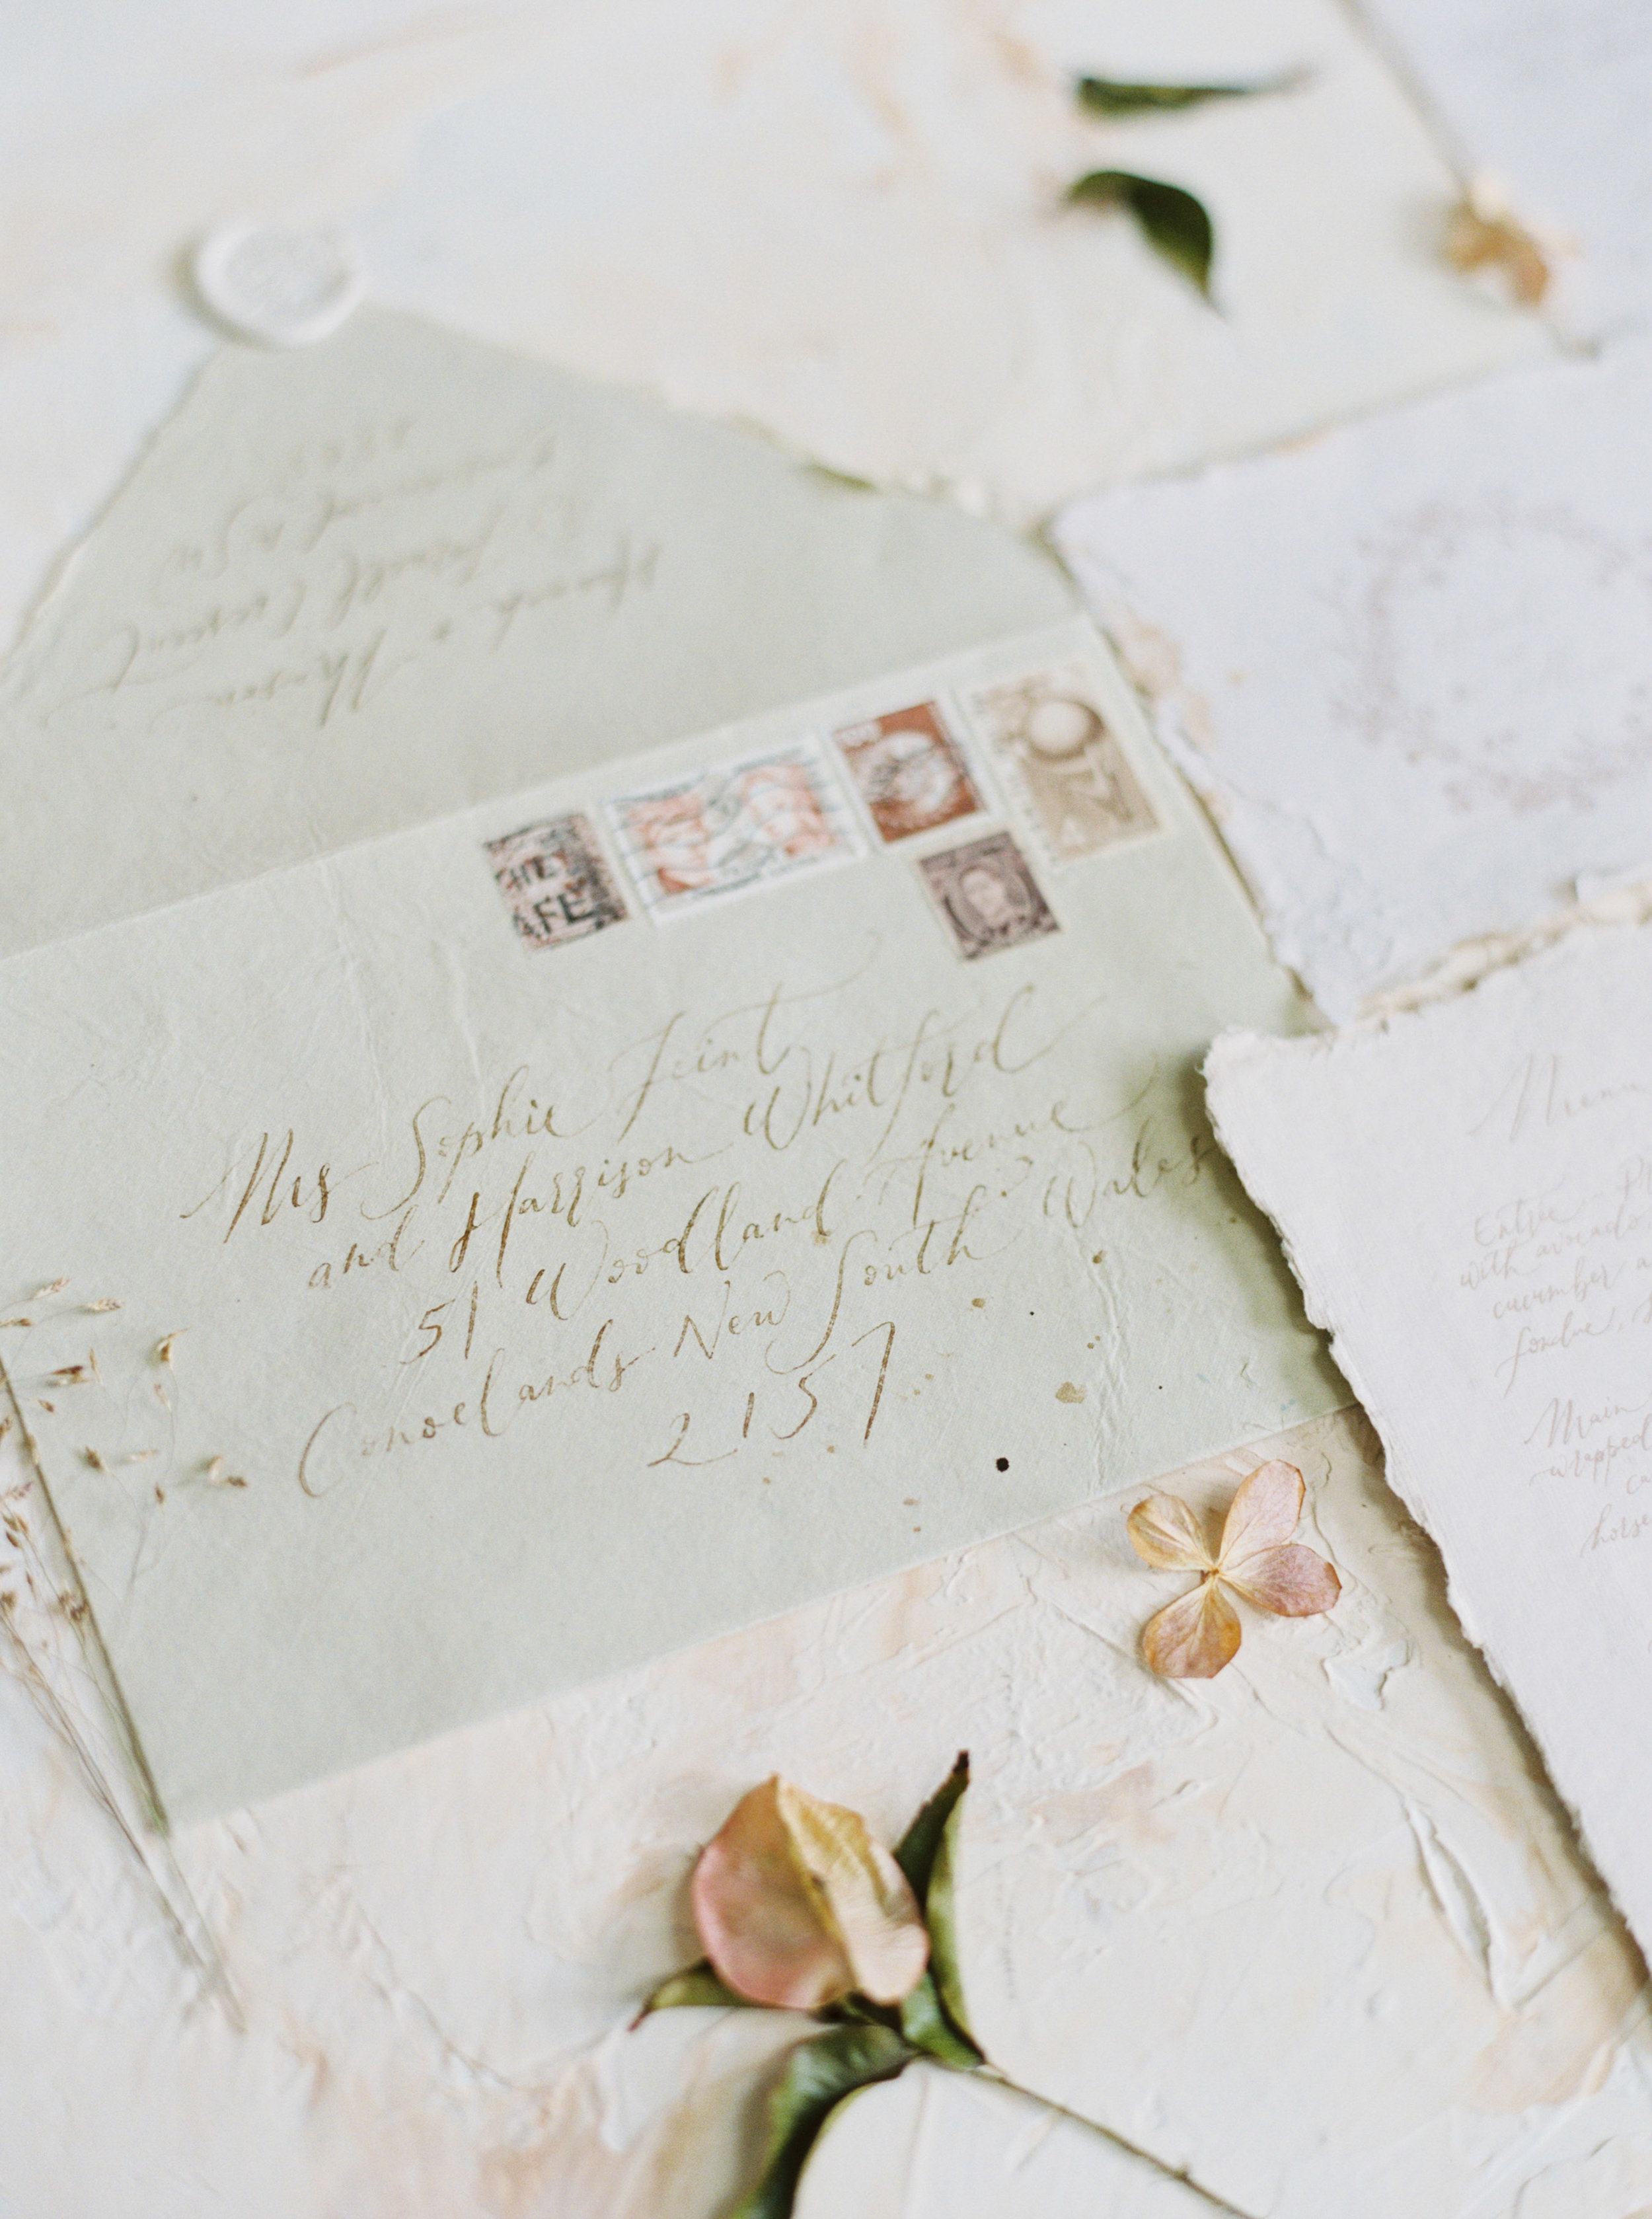 Artisan dried bridal flower arrangements for a Sydney wedding photoshoot - Fine art wedding calligraphy handmade paper suite